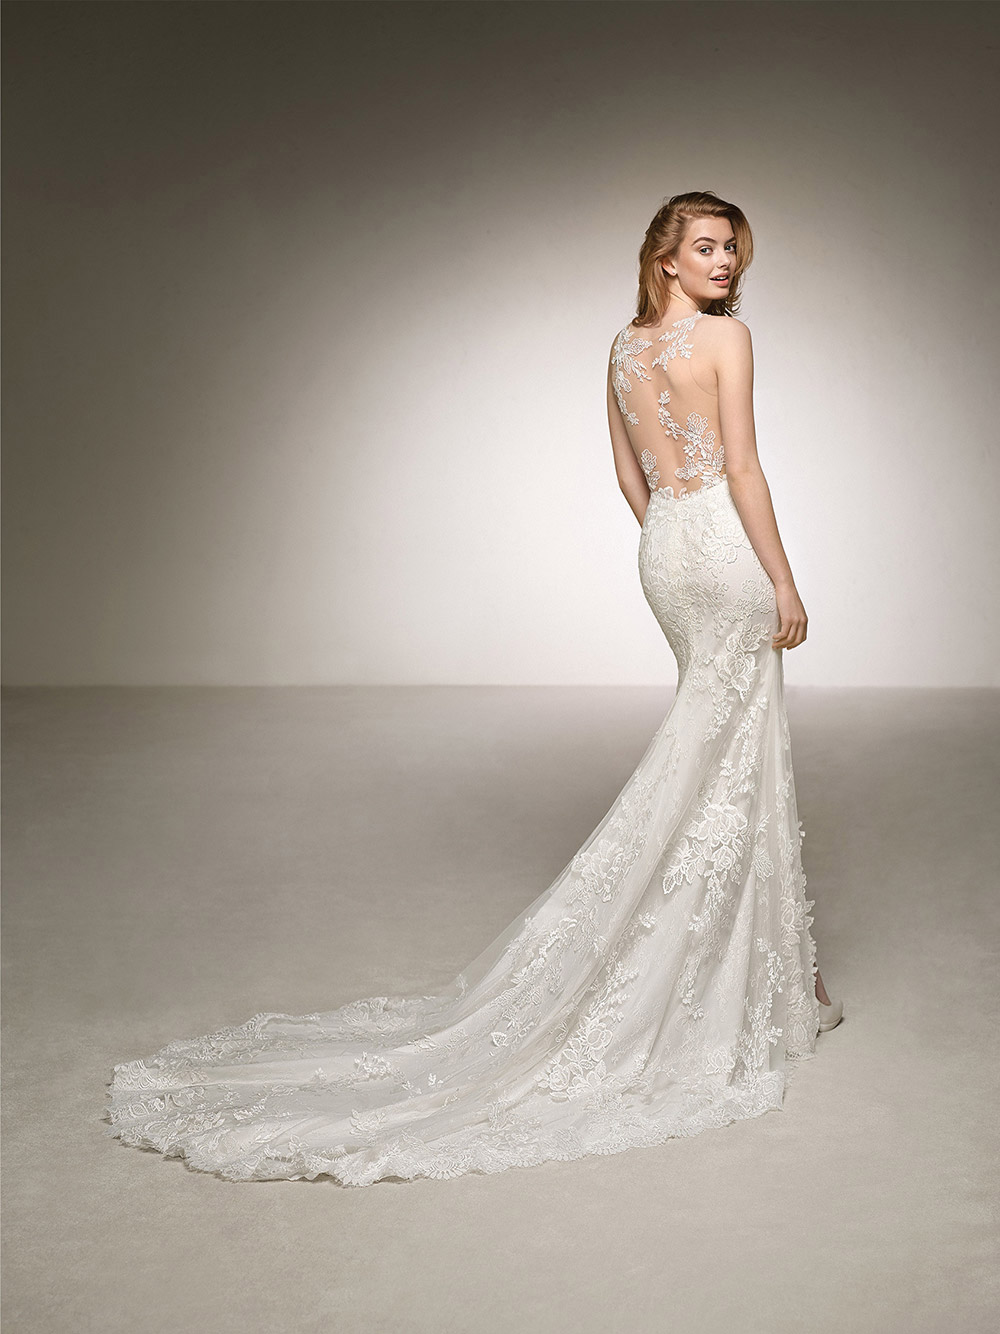 Dauco - Pronovias 2018 Bridal Collection. www.theweddingnotebook.com